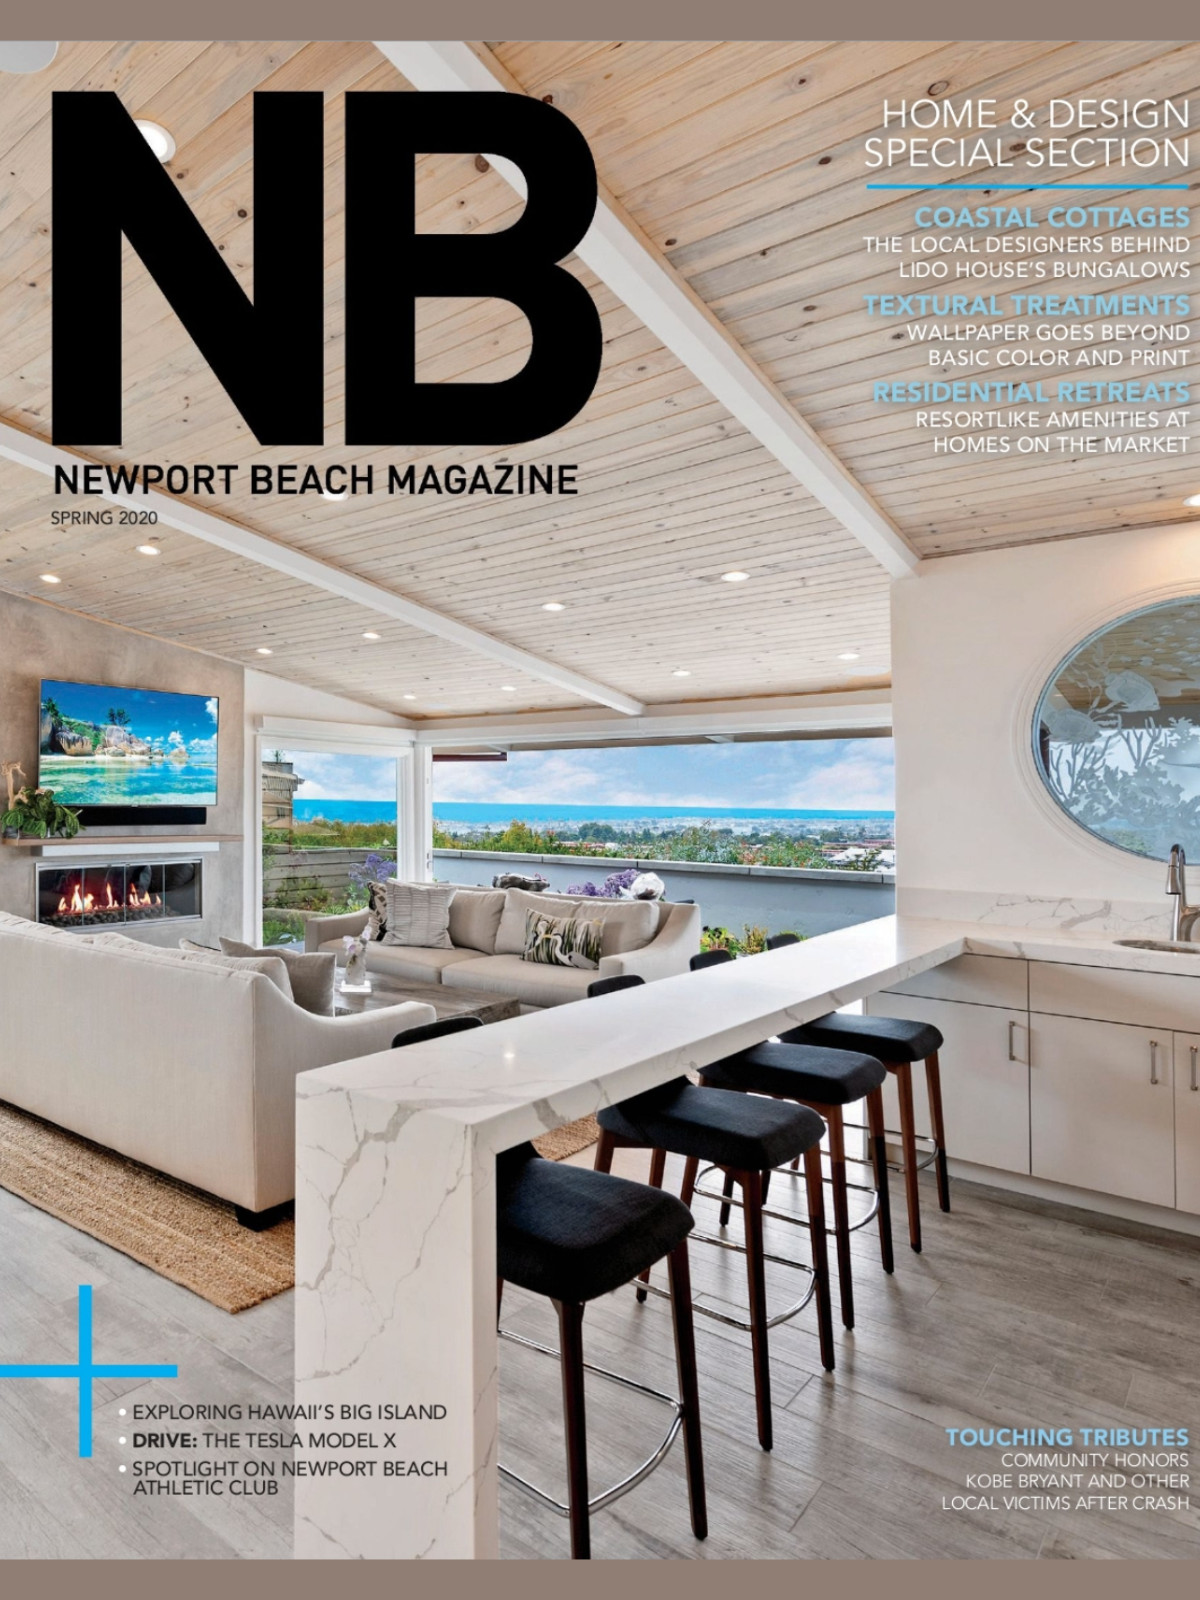 BLACKBAND_DESIGN_NEWPORT_BEACH_MAGAZINE_SPRING_2020-COVER